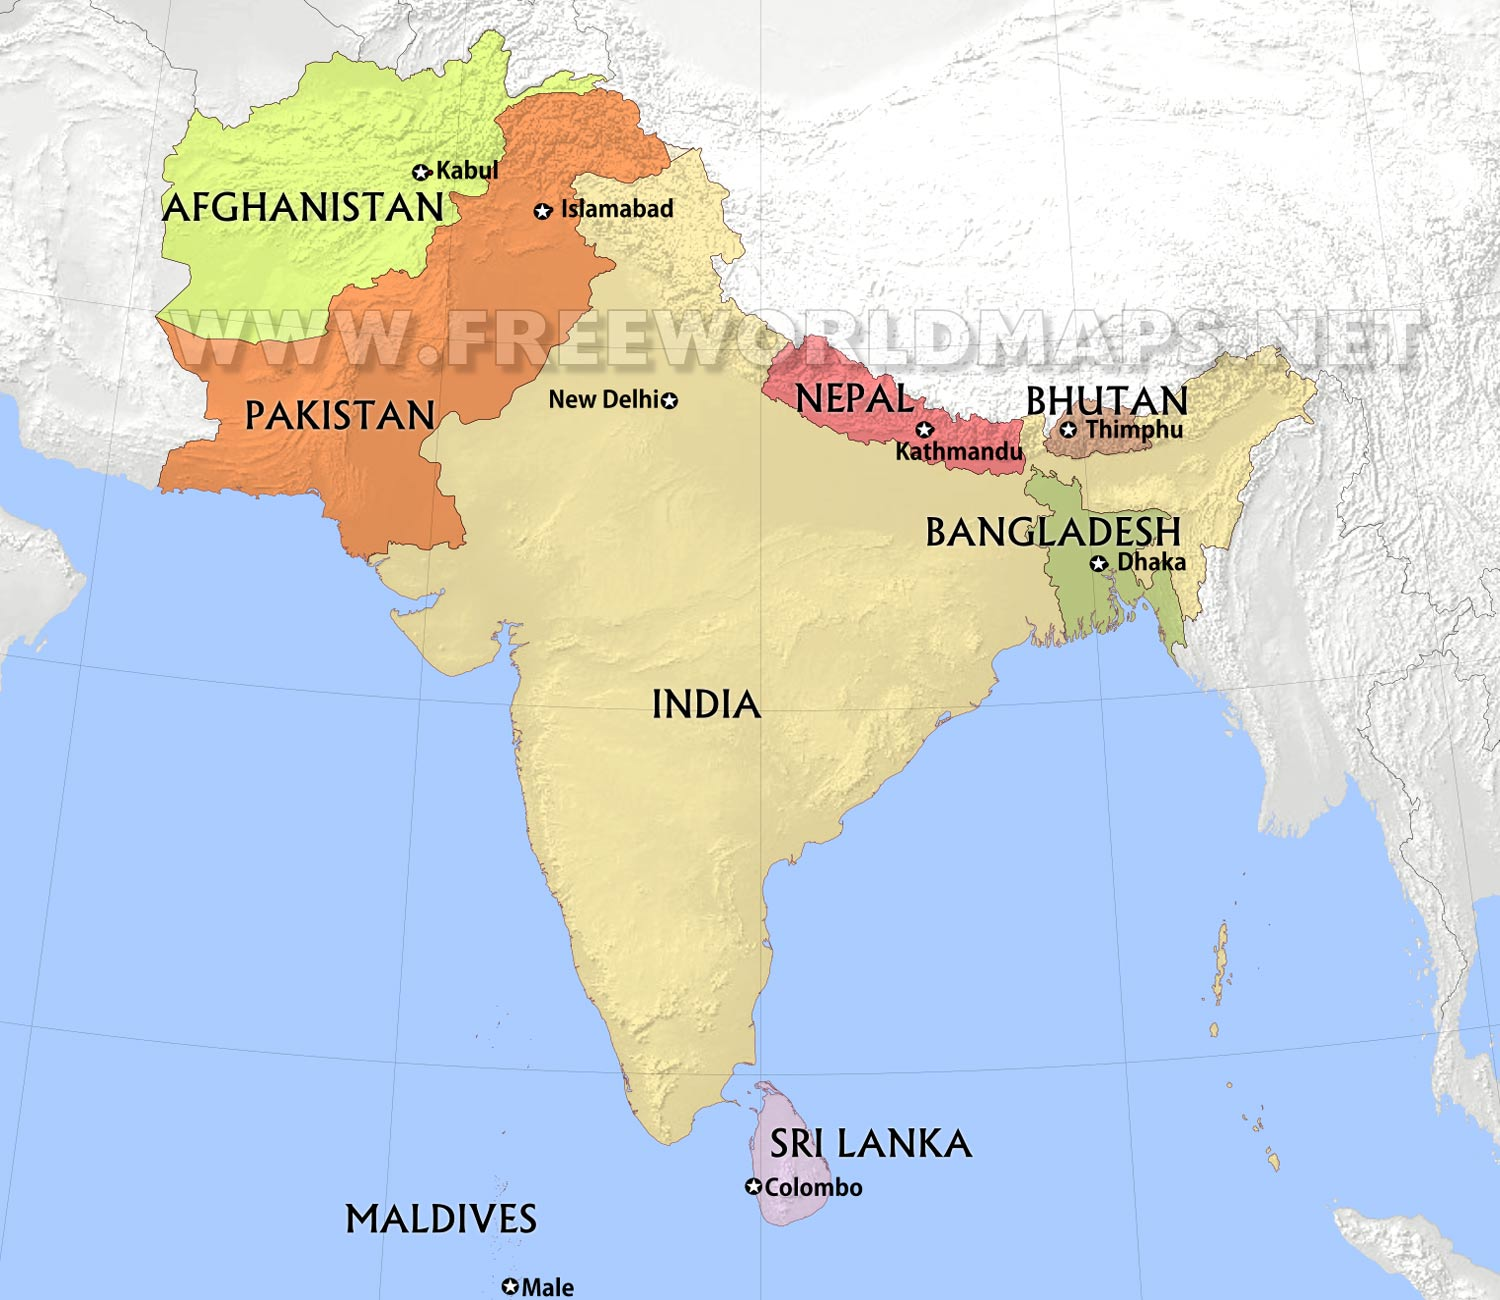 South Asia by Freeworldmapsnet